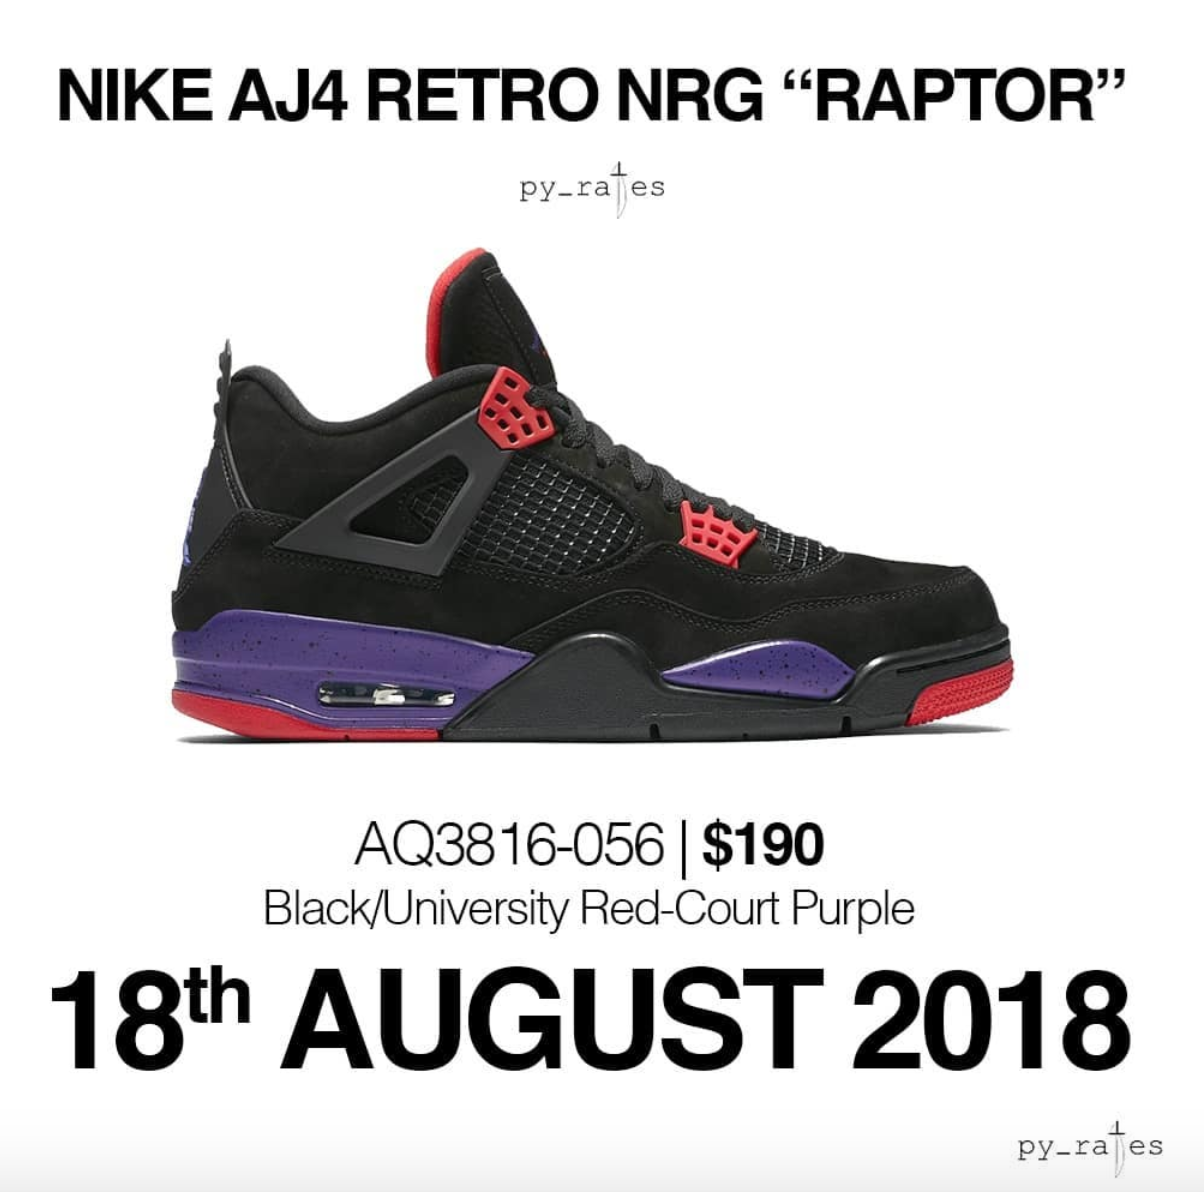 low priced 816dc 94a37 Possible Air Jordan 4 Retro NRG